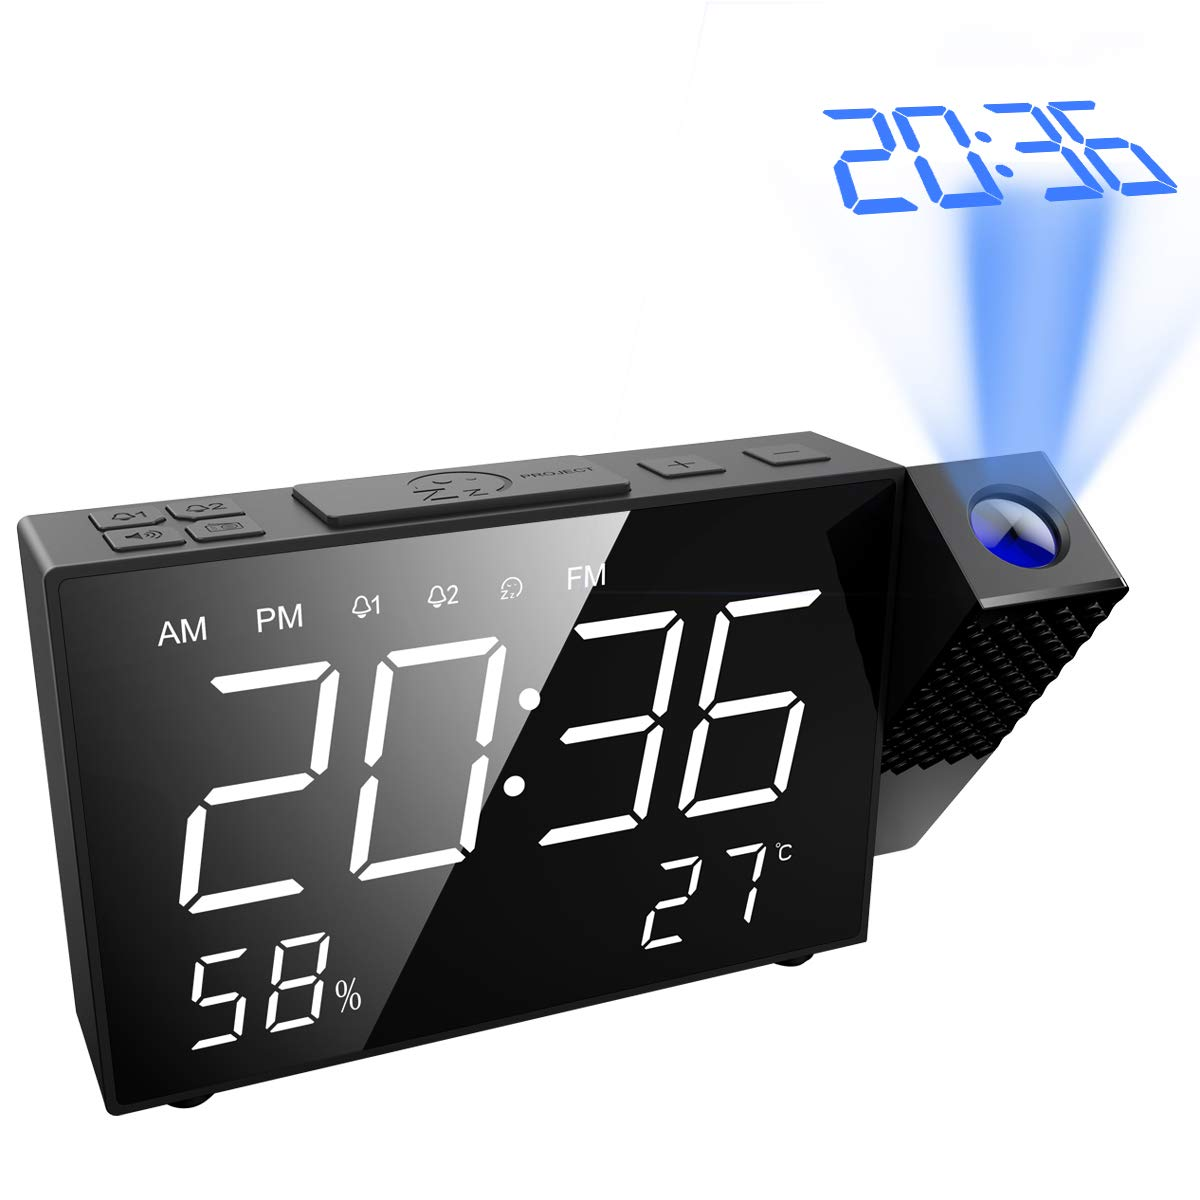 AMIR Projection Alarm Clock, 6.5'' Projection Clock, FM Radio with Temperature and Humidity, 12/24 Hours, Dual Alarm with USB Charging Portor for Home, Bedroom, Kitchen